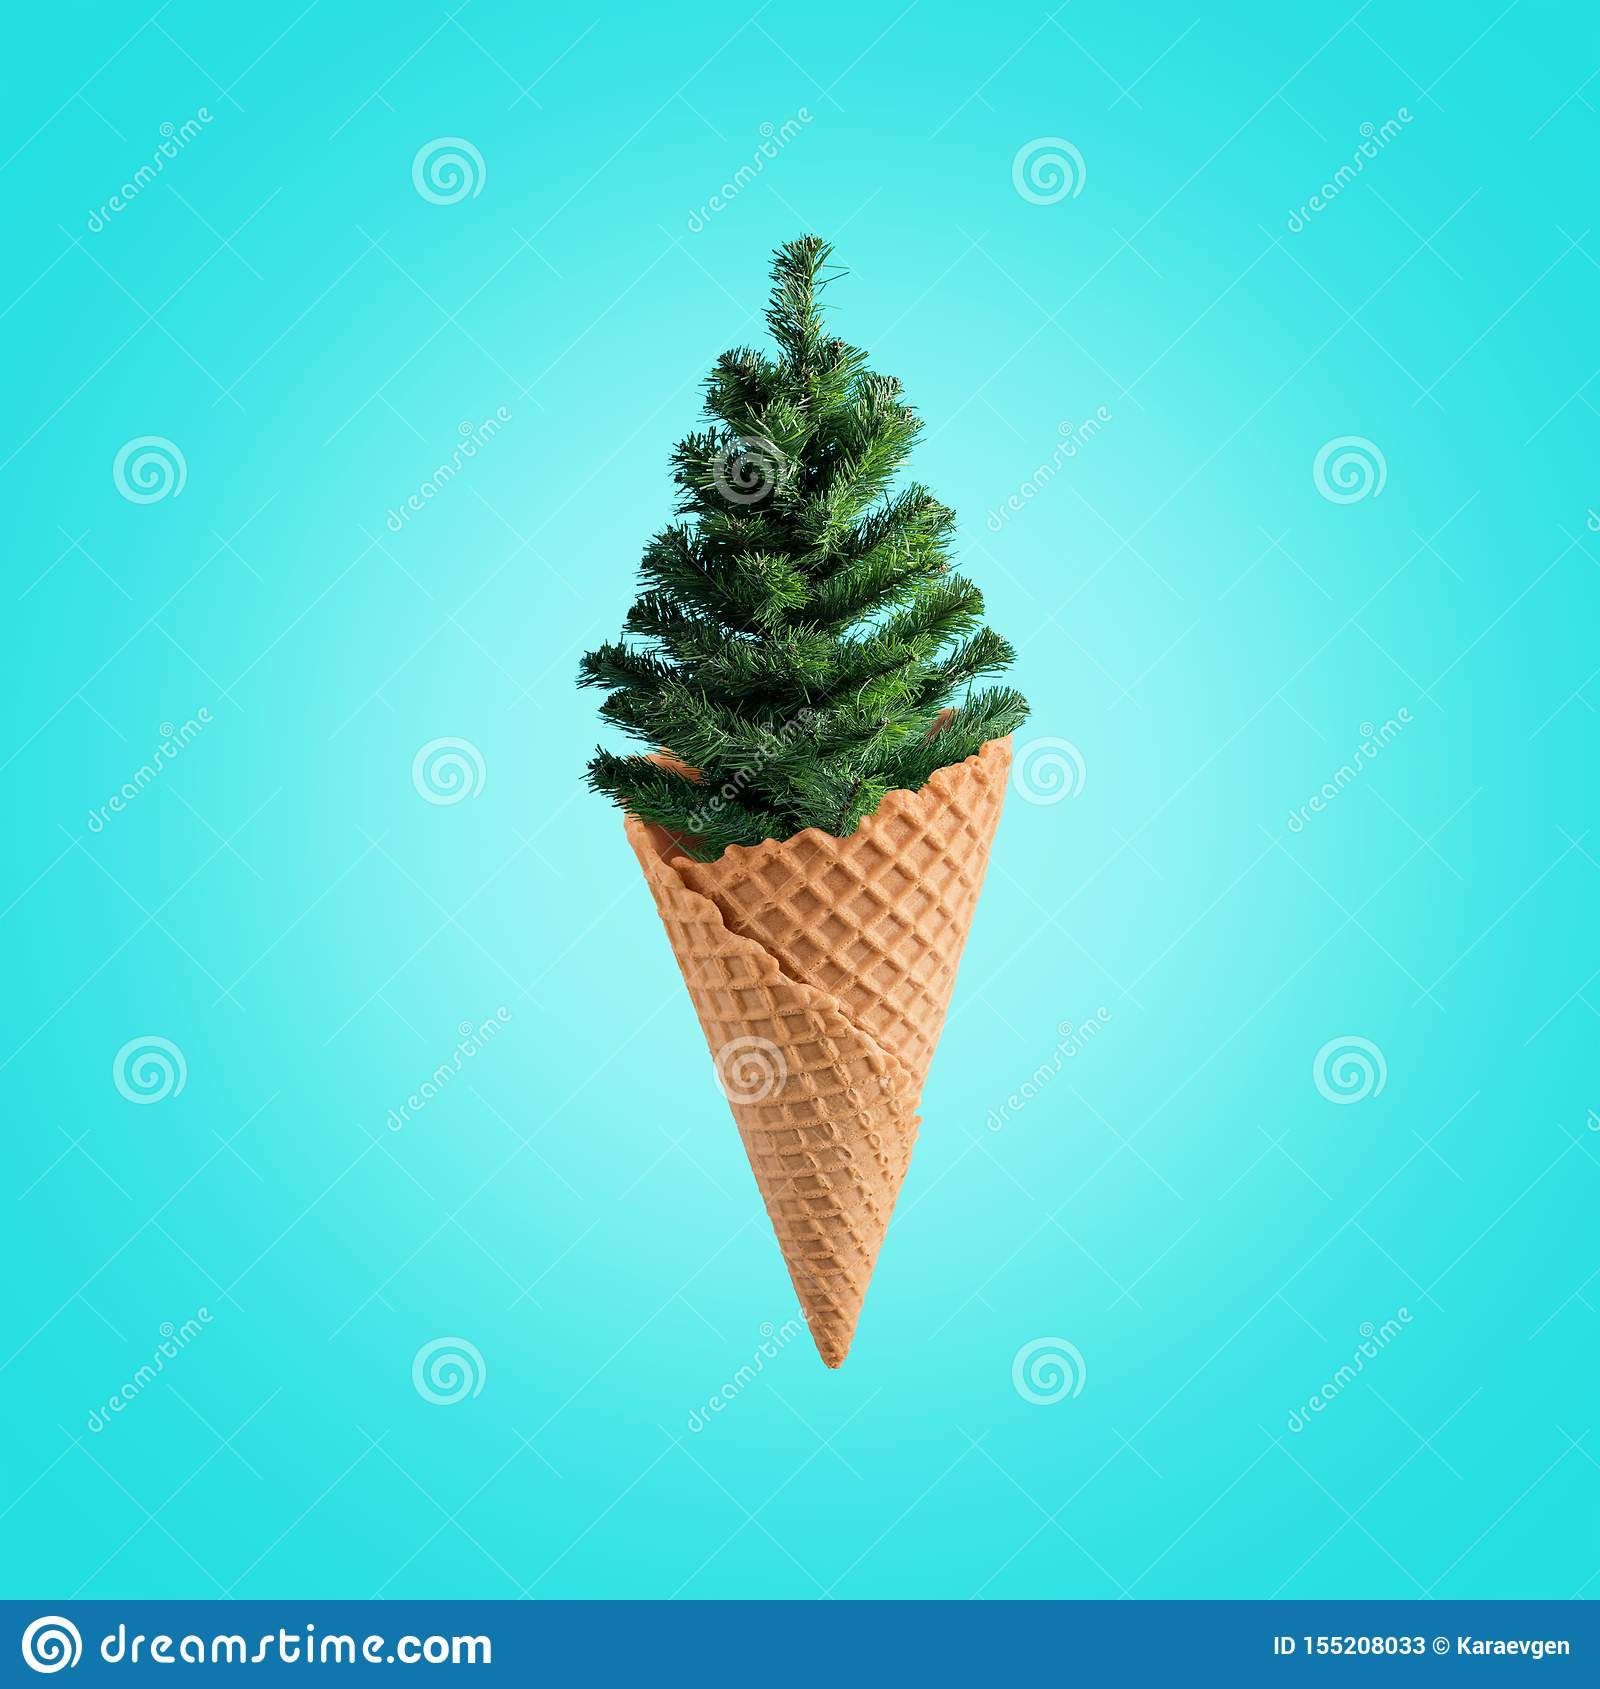 1 433 Christmas Ice Cream Cone Photos Free Royalty Free Stock Photos From Dreamstime